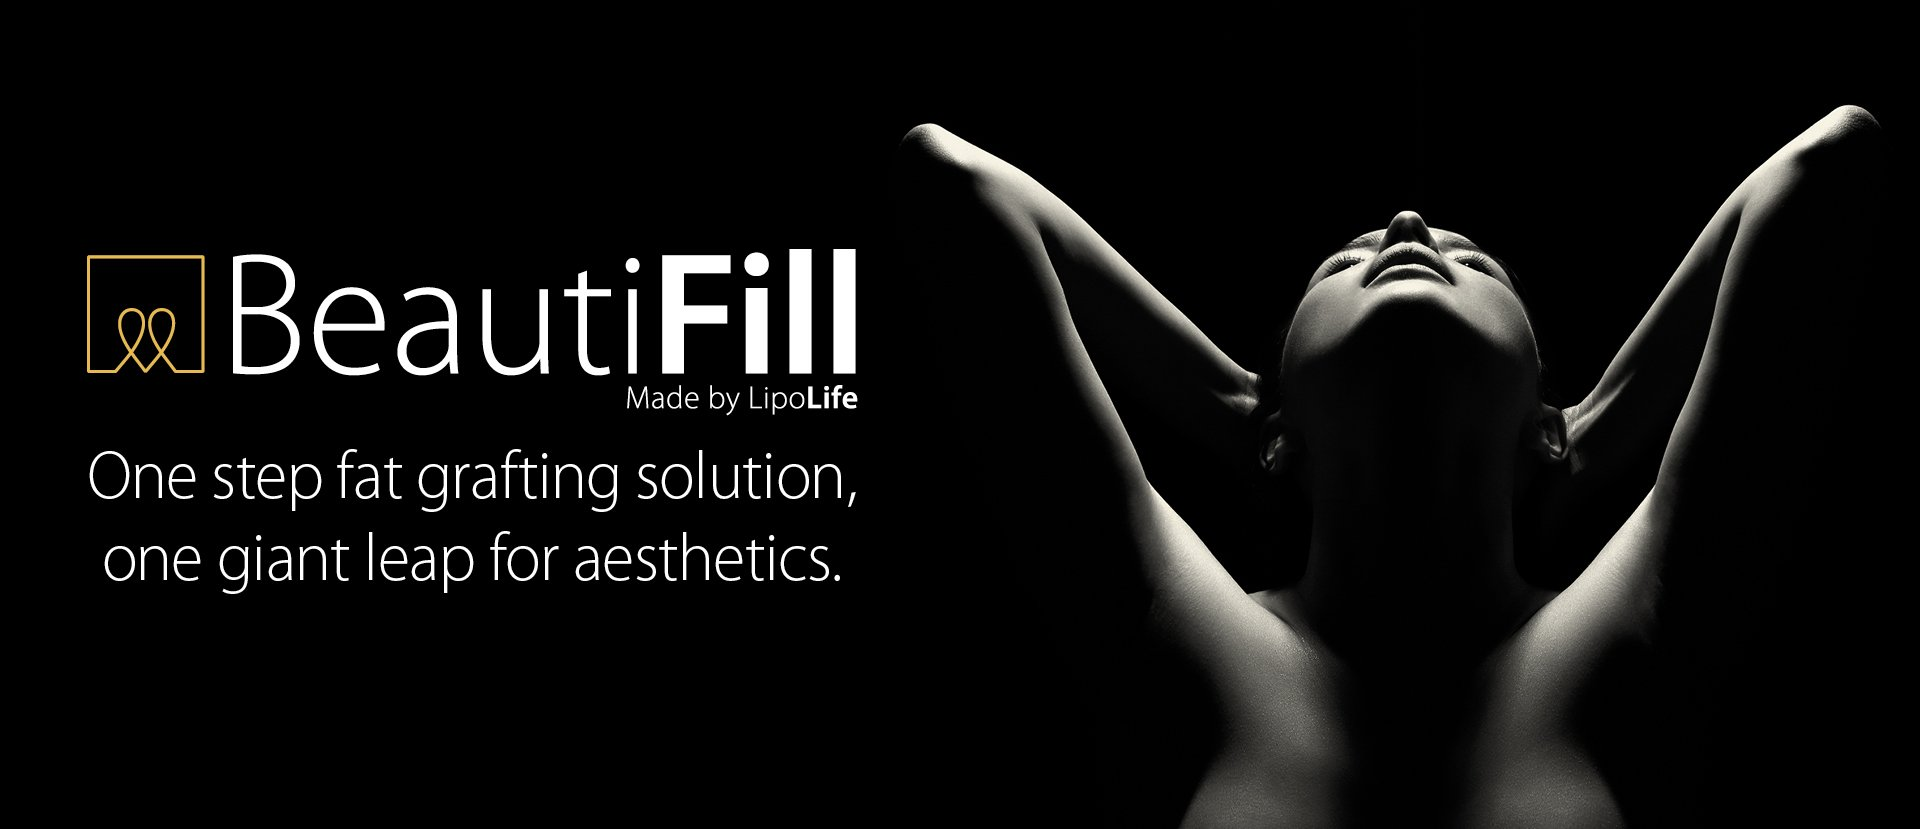 BeautiFill by LipoLife